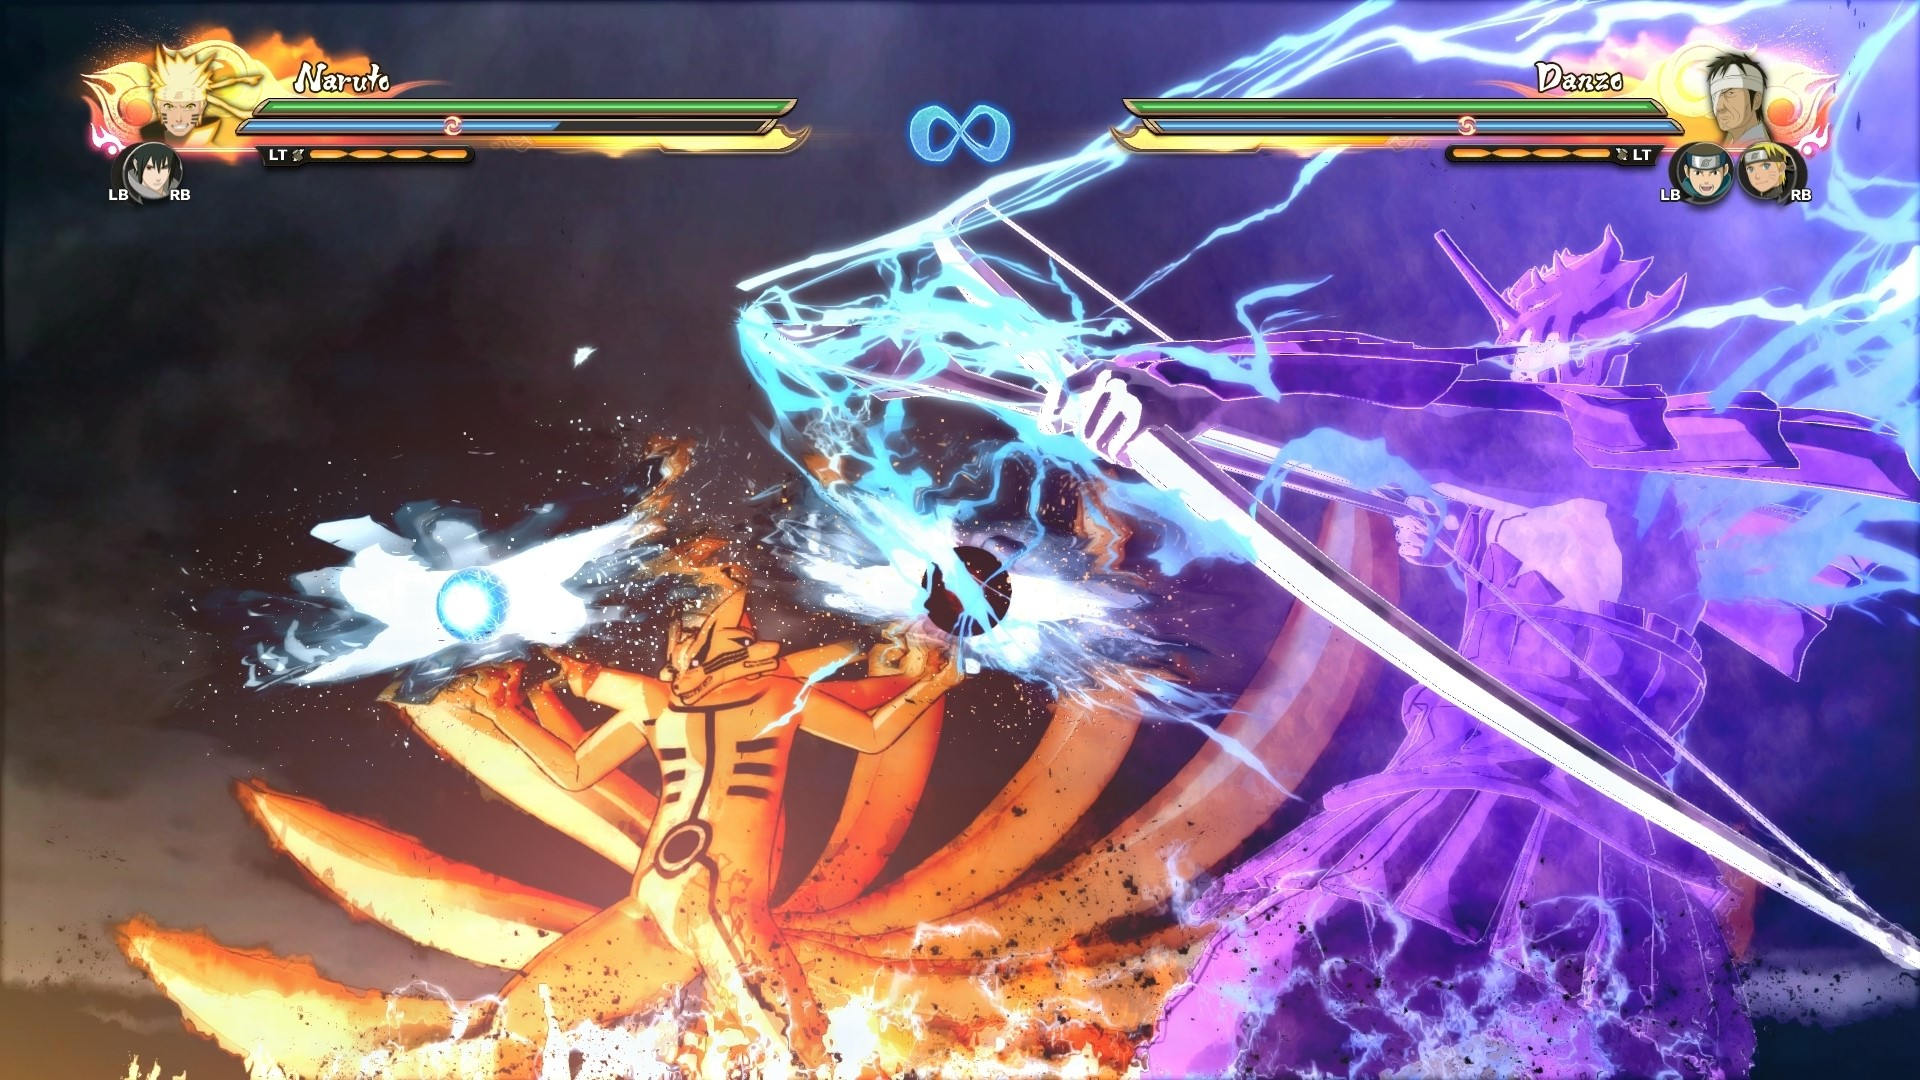 Play Naruto Shippuden: Ultimate Ninja Storm 4 for Free This Weekend